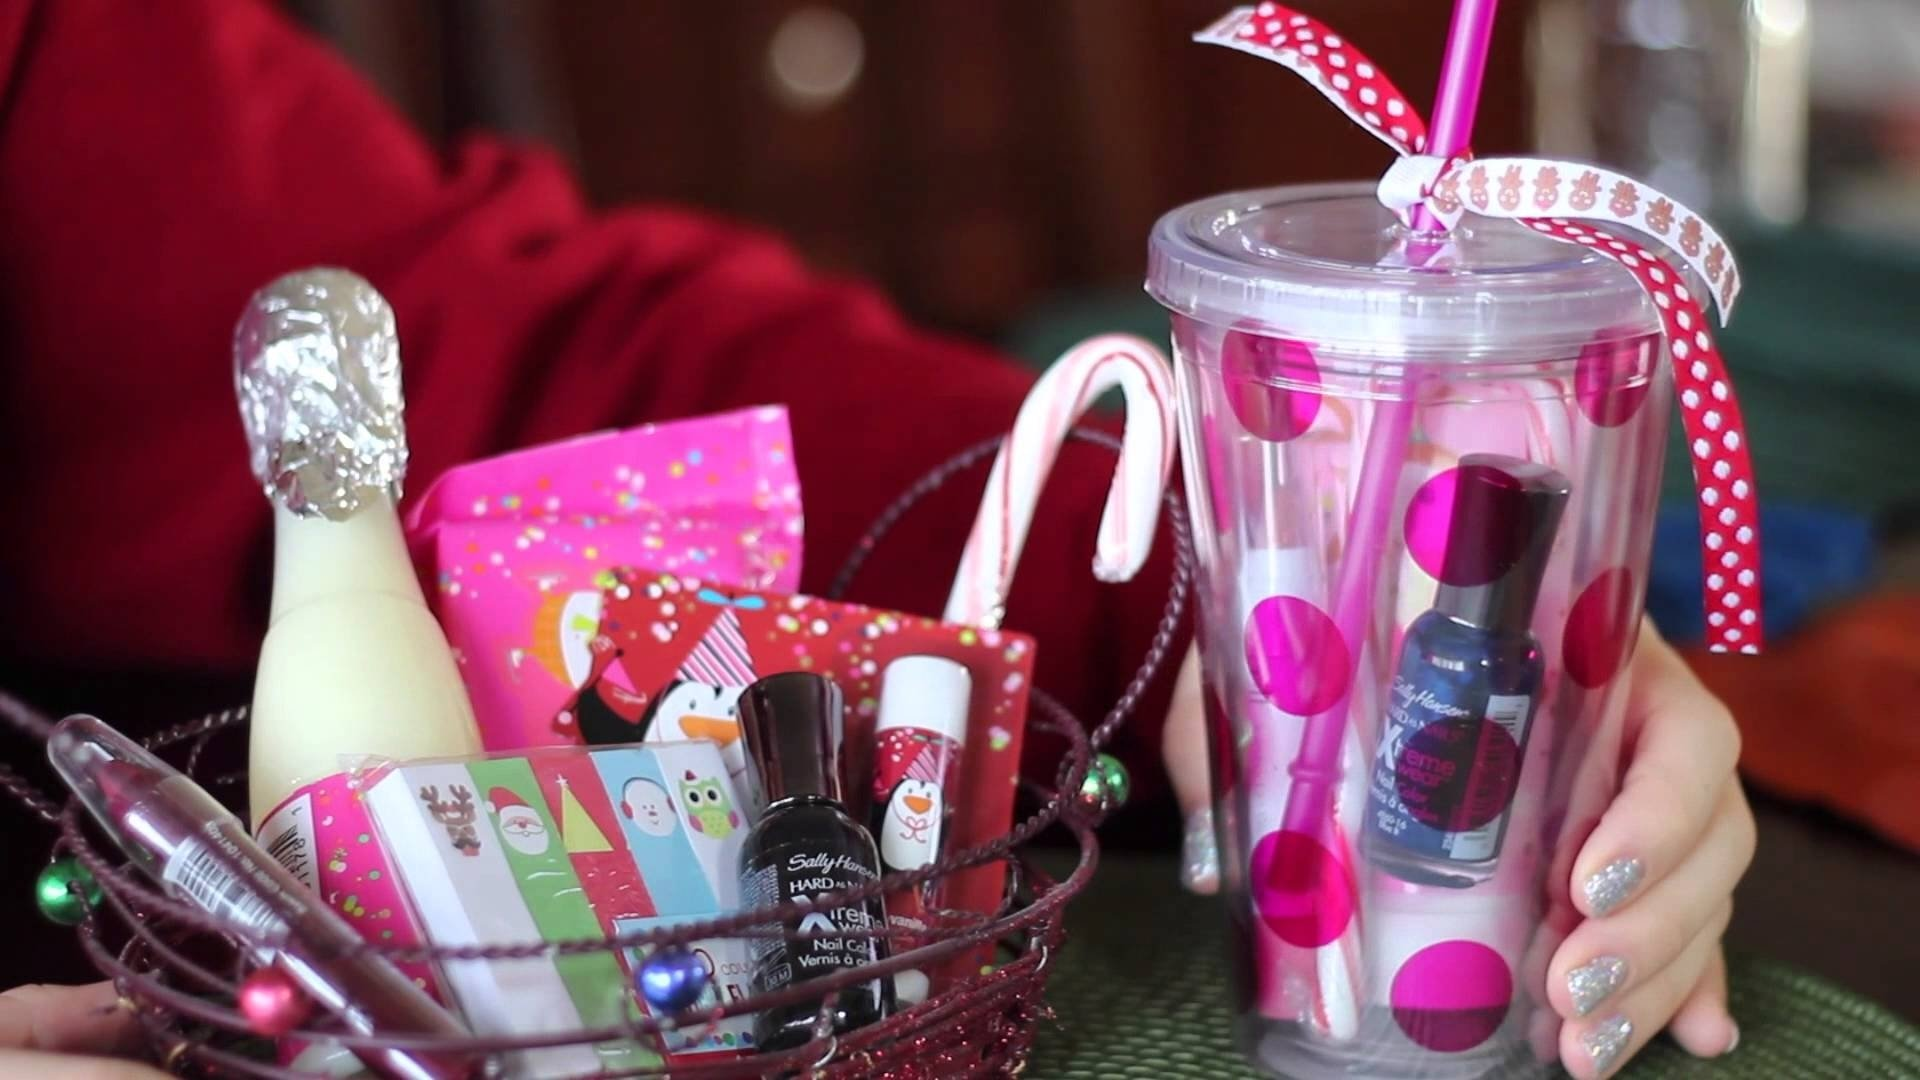 10 Lovable Small Gift Ideas For Girlfriend cute diy gift ideas cheap easy and fun youtube 4 2020